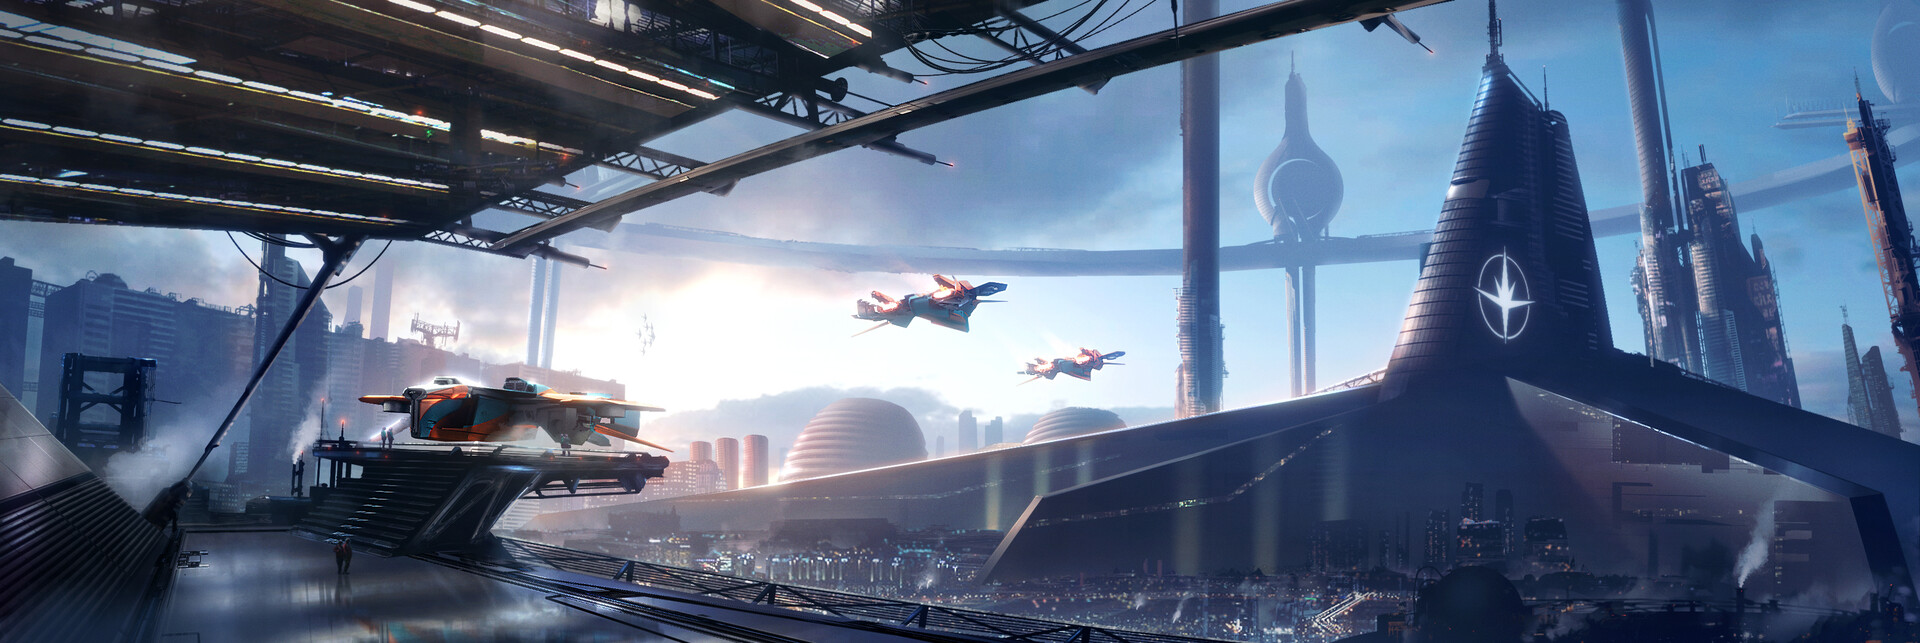 The Science Fiction Art of Quentin Pointillart